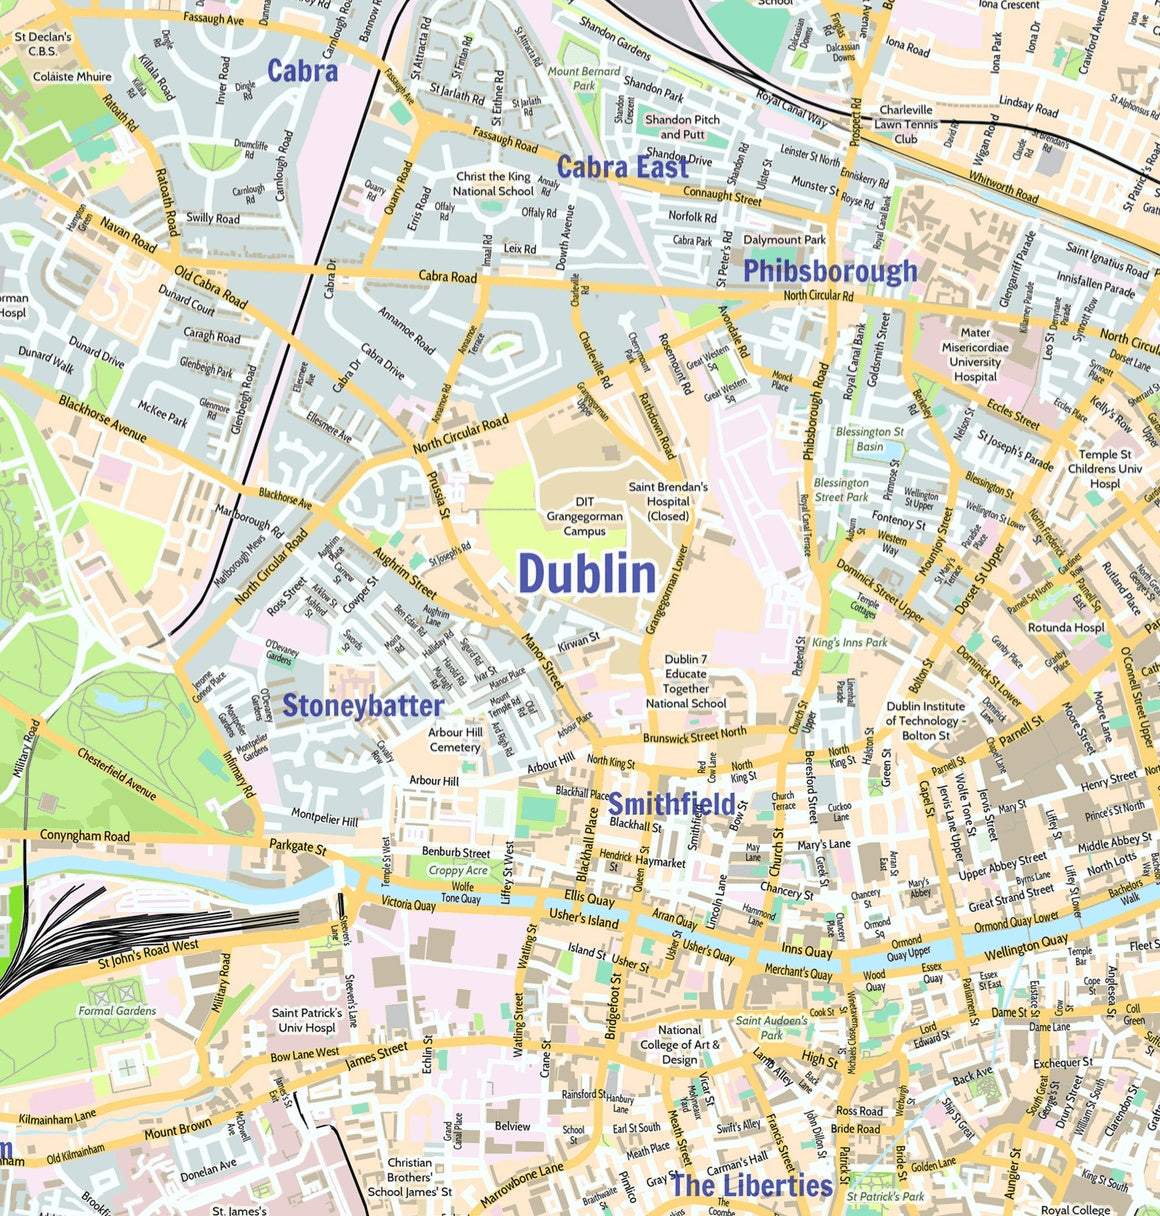 Map Of Ireland Near Dublin.Dublin City Map Laminated Wall Map Of Dublin Ireland